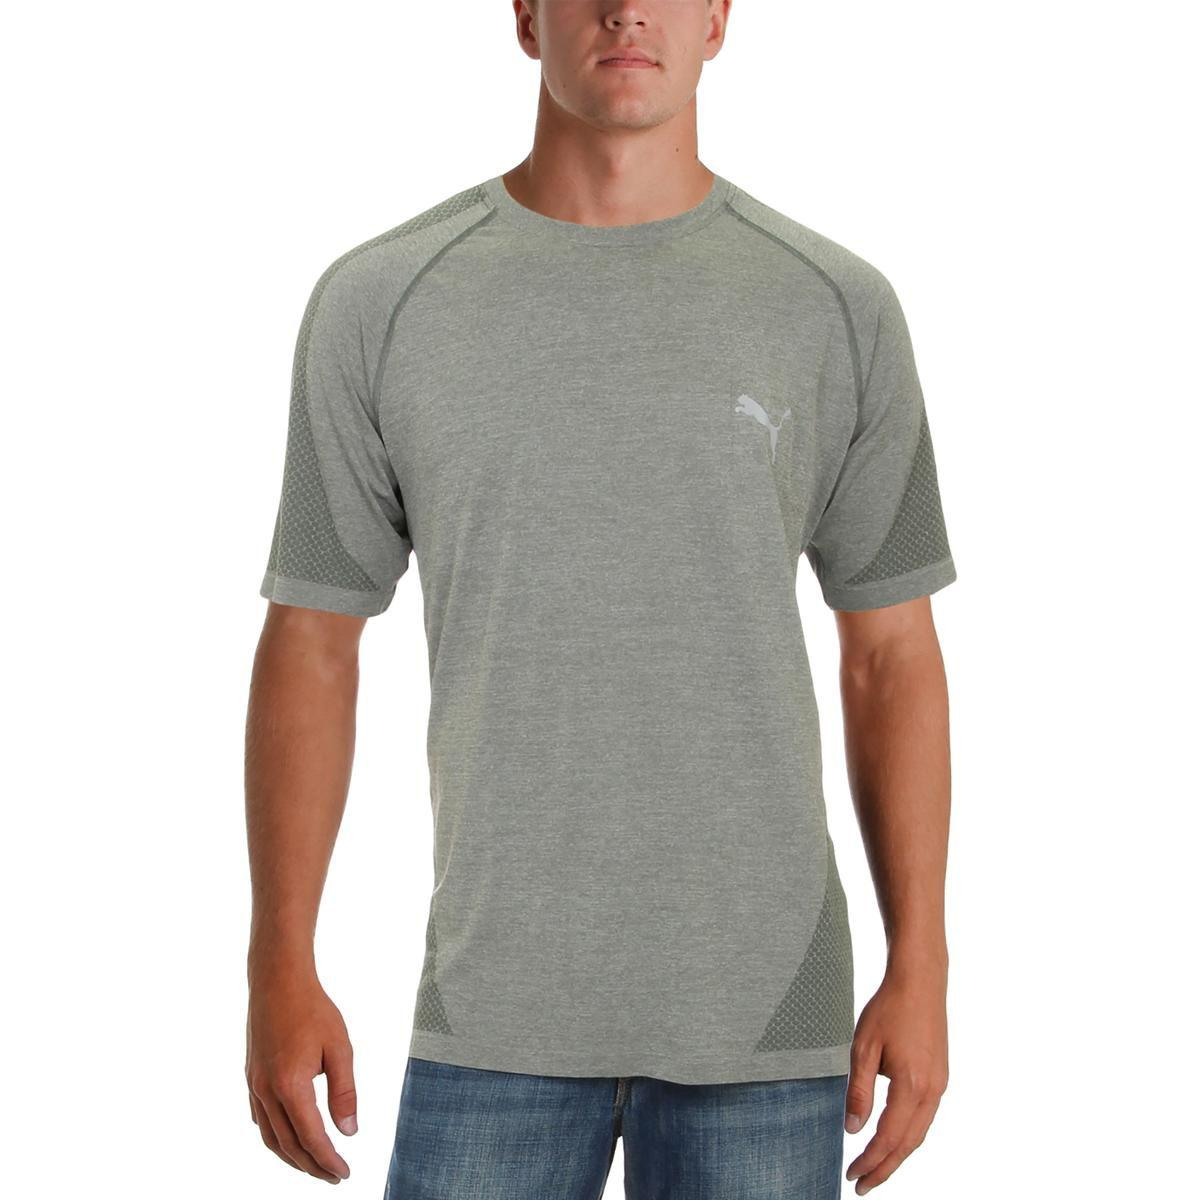 Lyst Puma Mens Printed Performance T shirt in Gray for Men